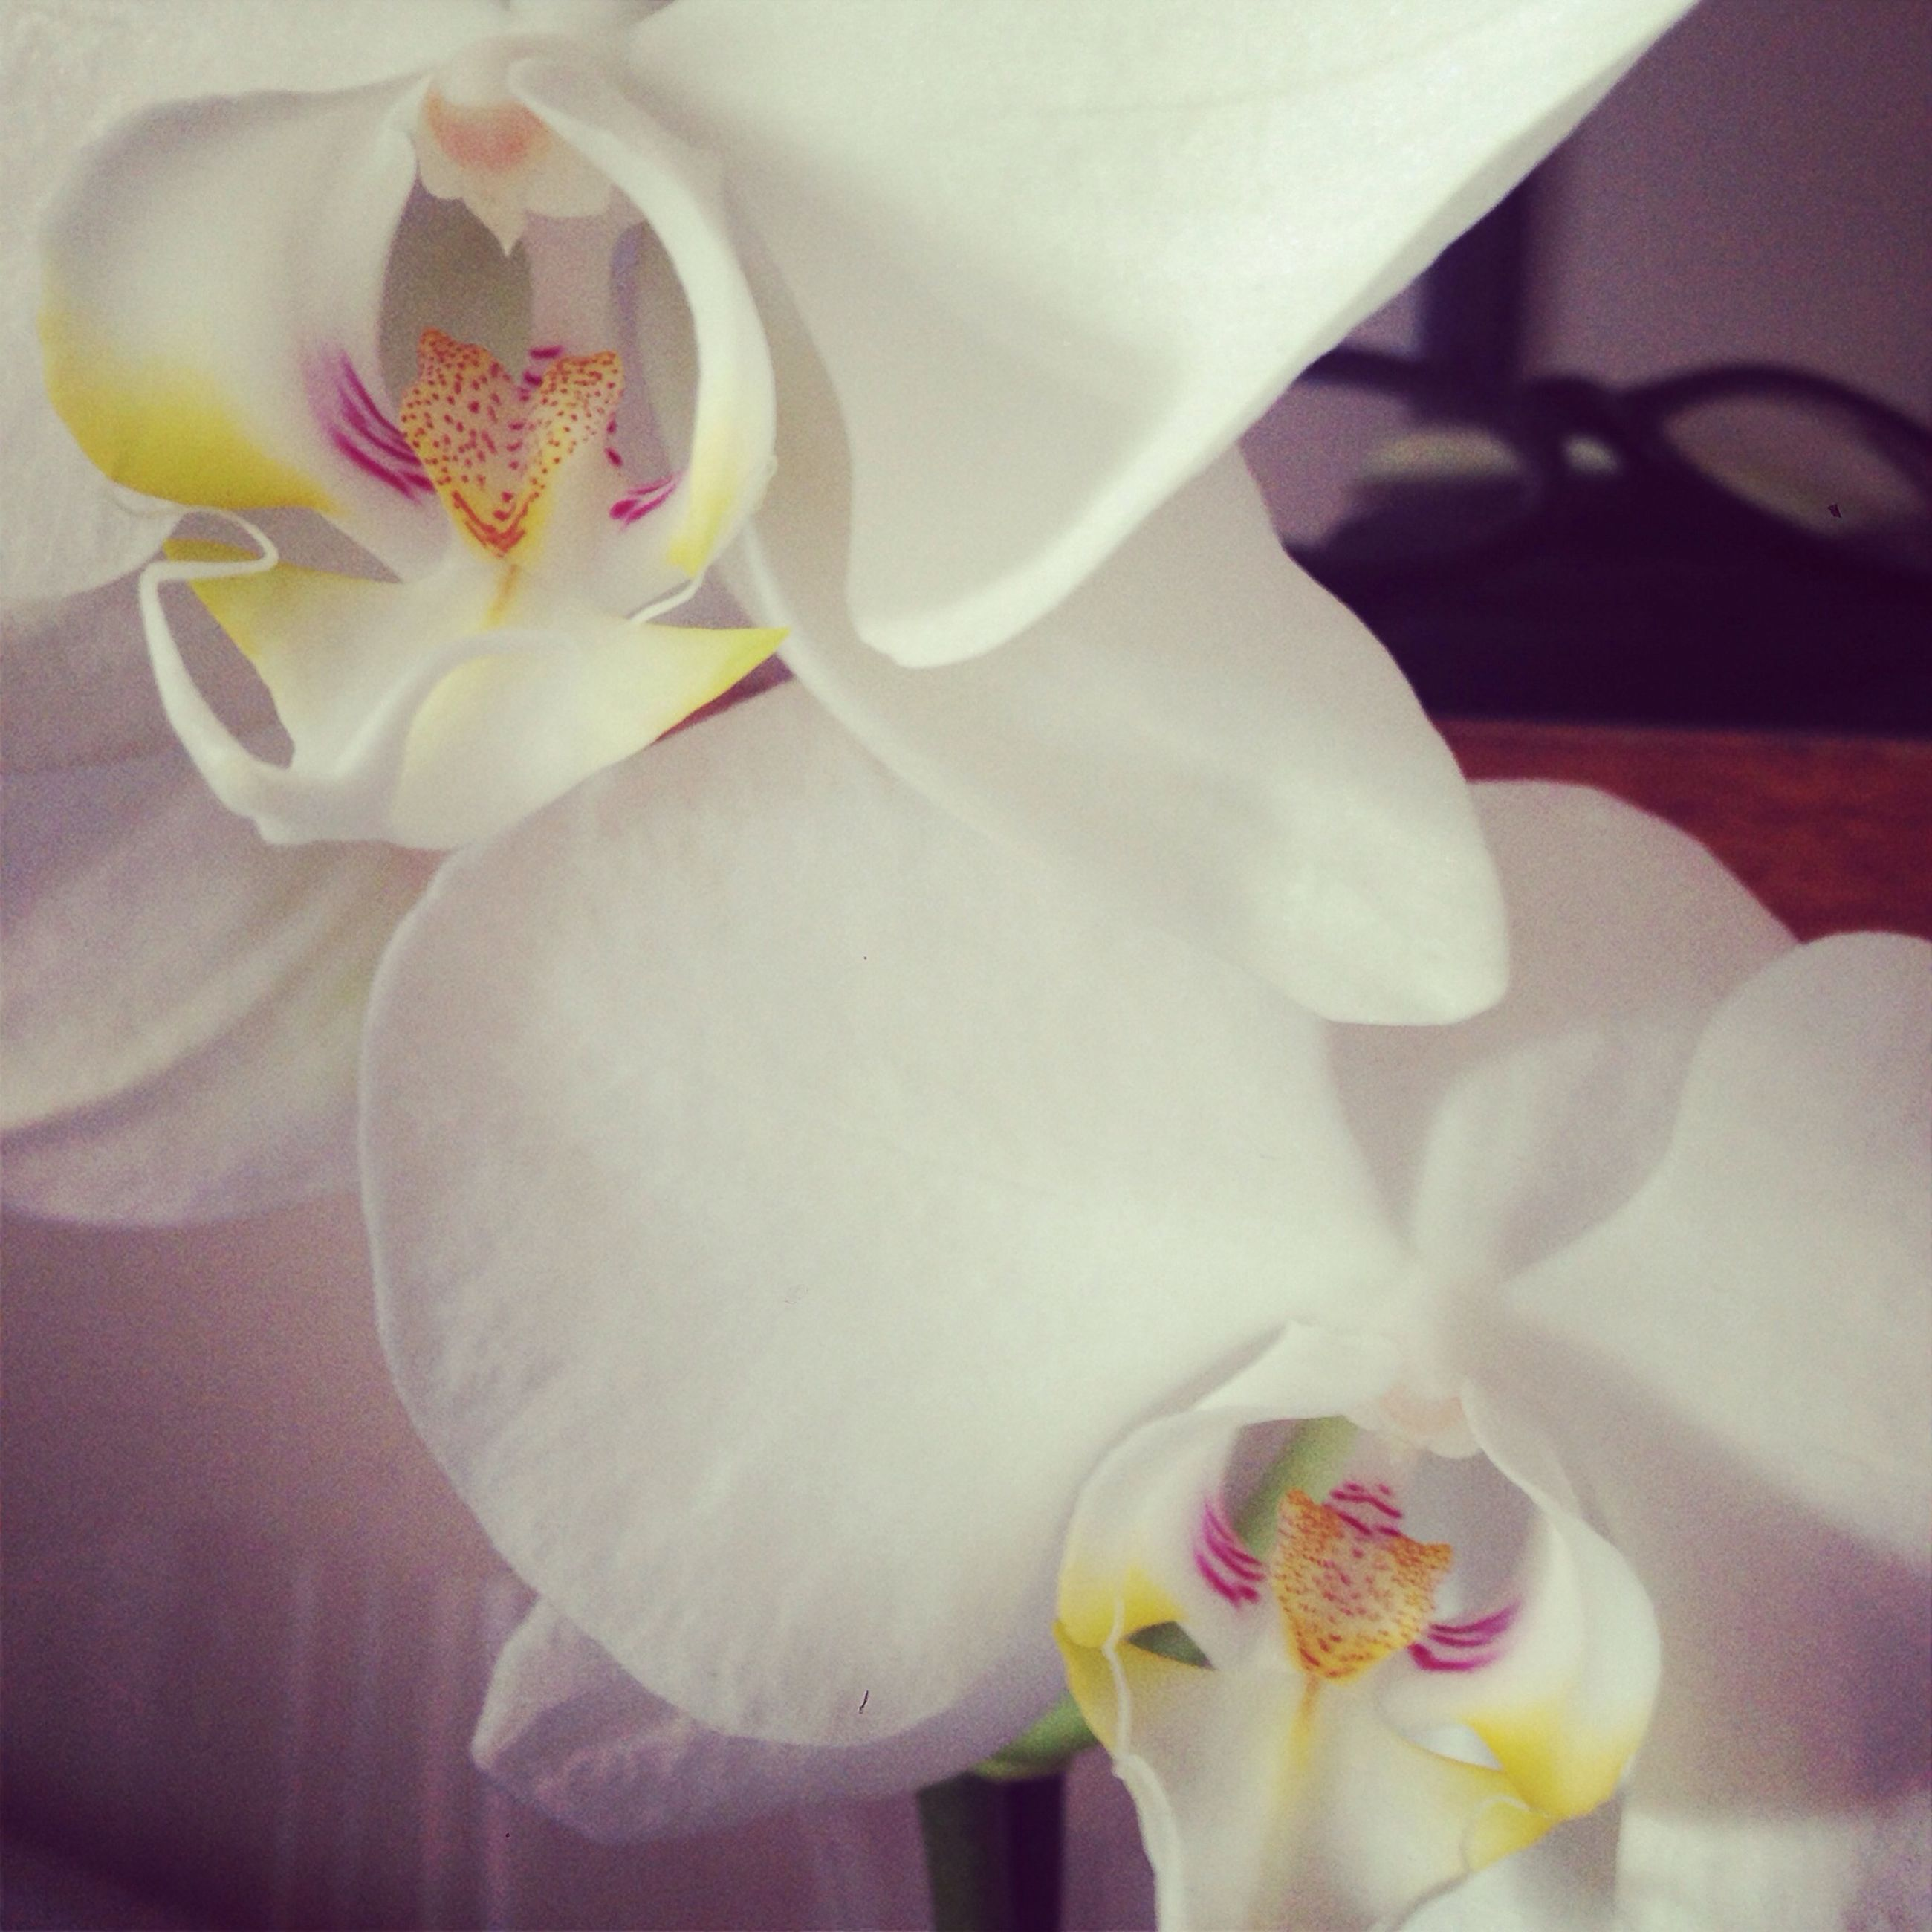 flower, petal, indoors, fragility, flower head, close-up, white color, freshness, vase, pink color, focus on foreground, home interior, decoration, orchid, beauty in nature, bouquet, rose - flower, nature, softness, no people